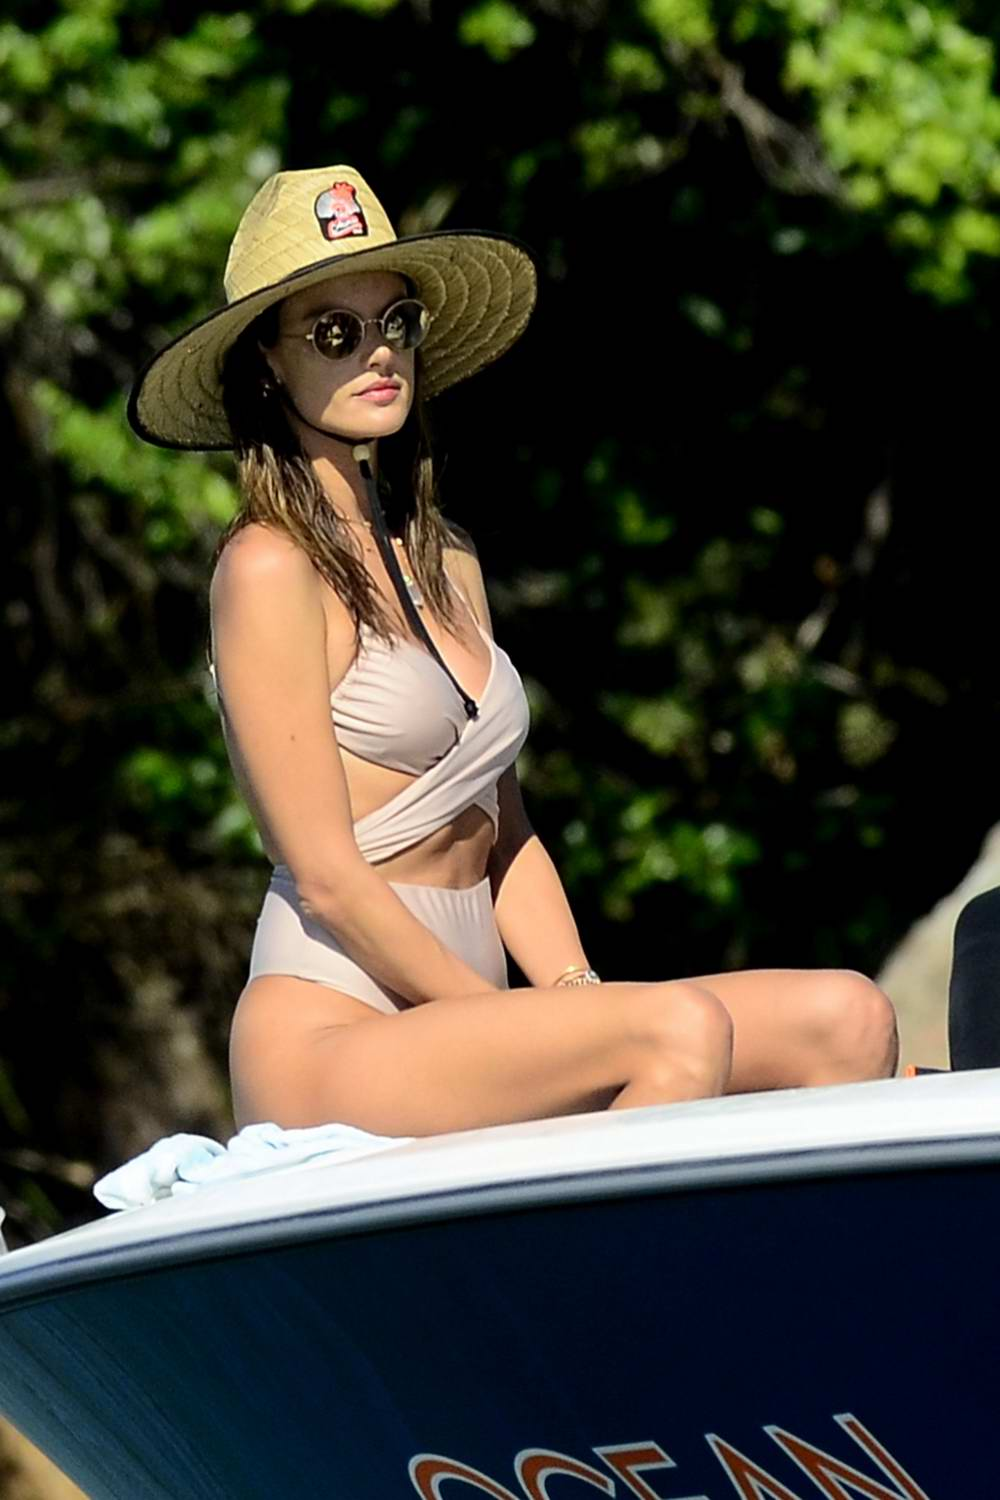 Alessandra Ambrosio sports a beige swimsuit as she enjoys another day on a boat with her family in Florianópolis, Brazil